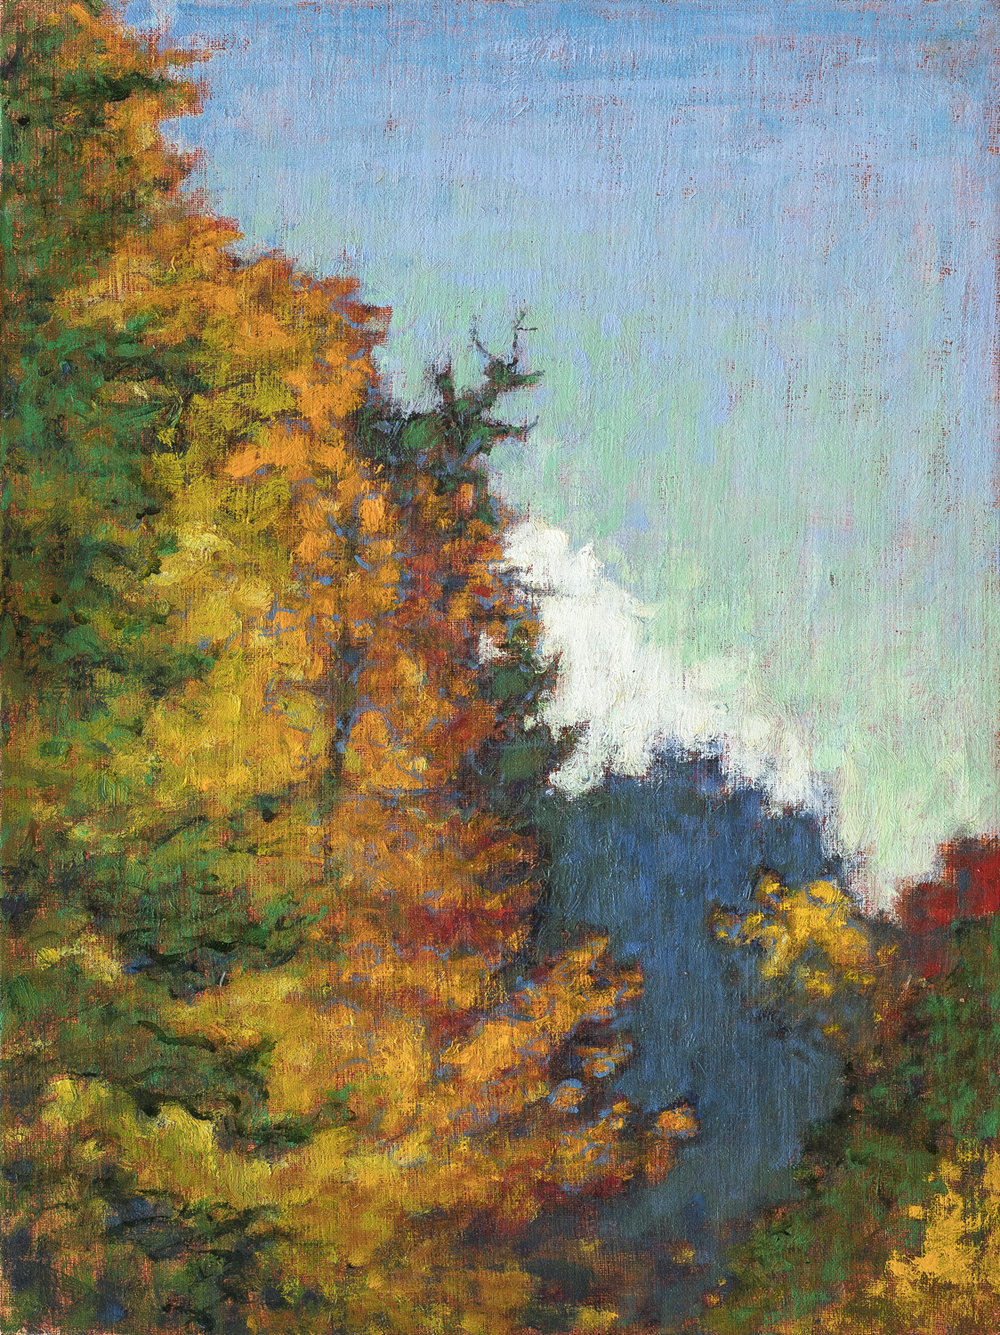 Autumn Afternoon | oil on linen | 16 x 12"